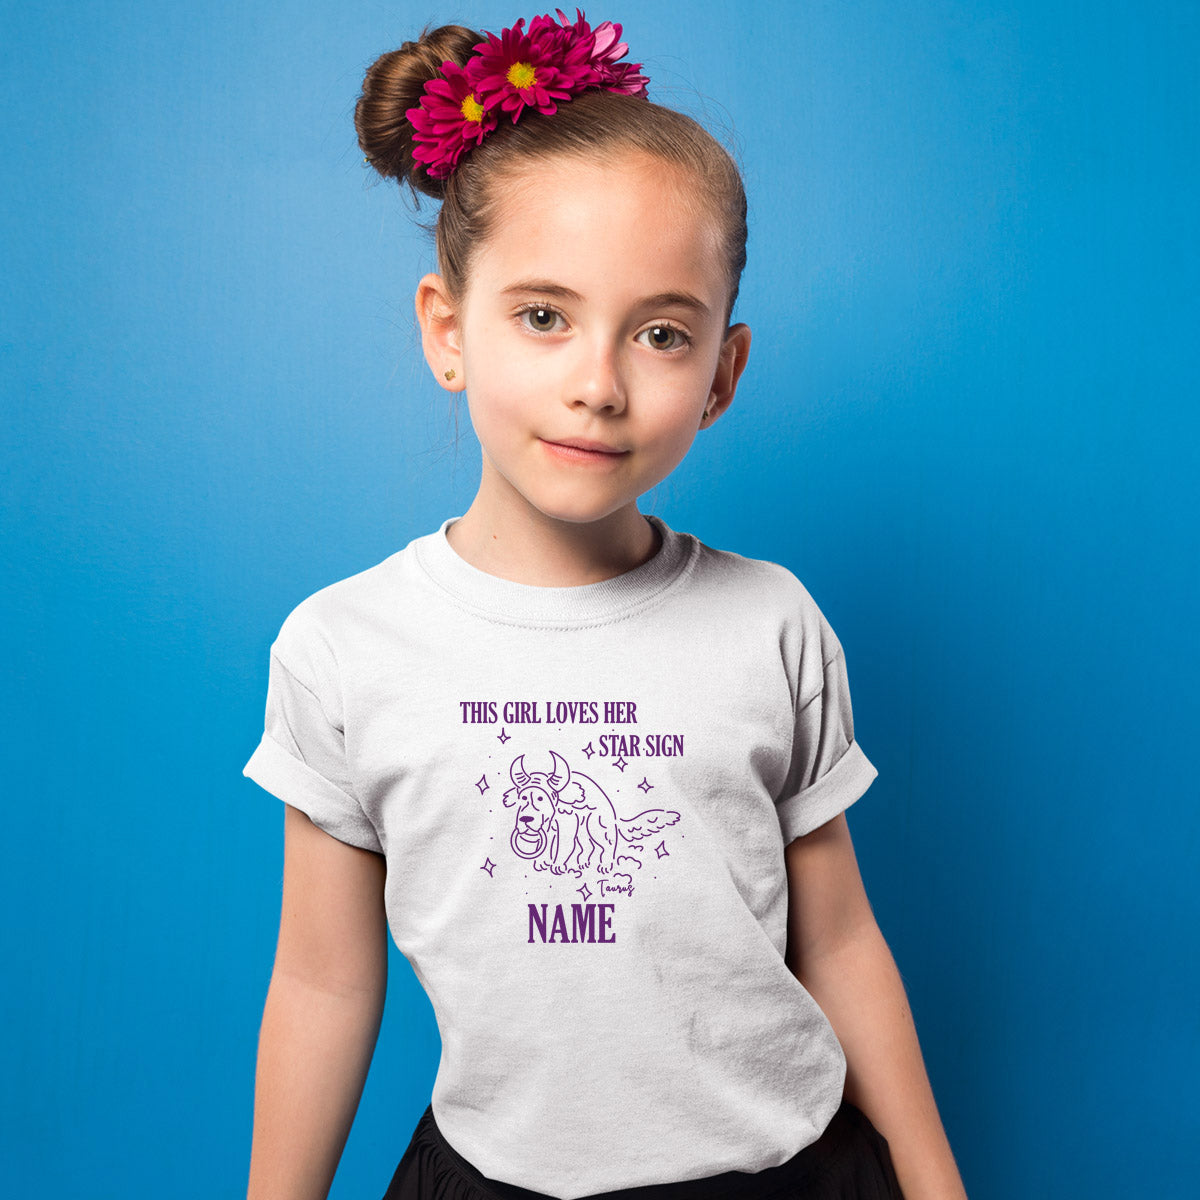 Sprinklecart This Girl Loves Her Star Sign Printed Personalized Name Printed T Shirt Wear (White)